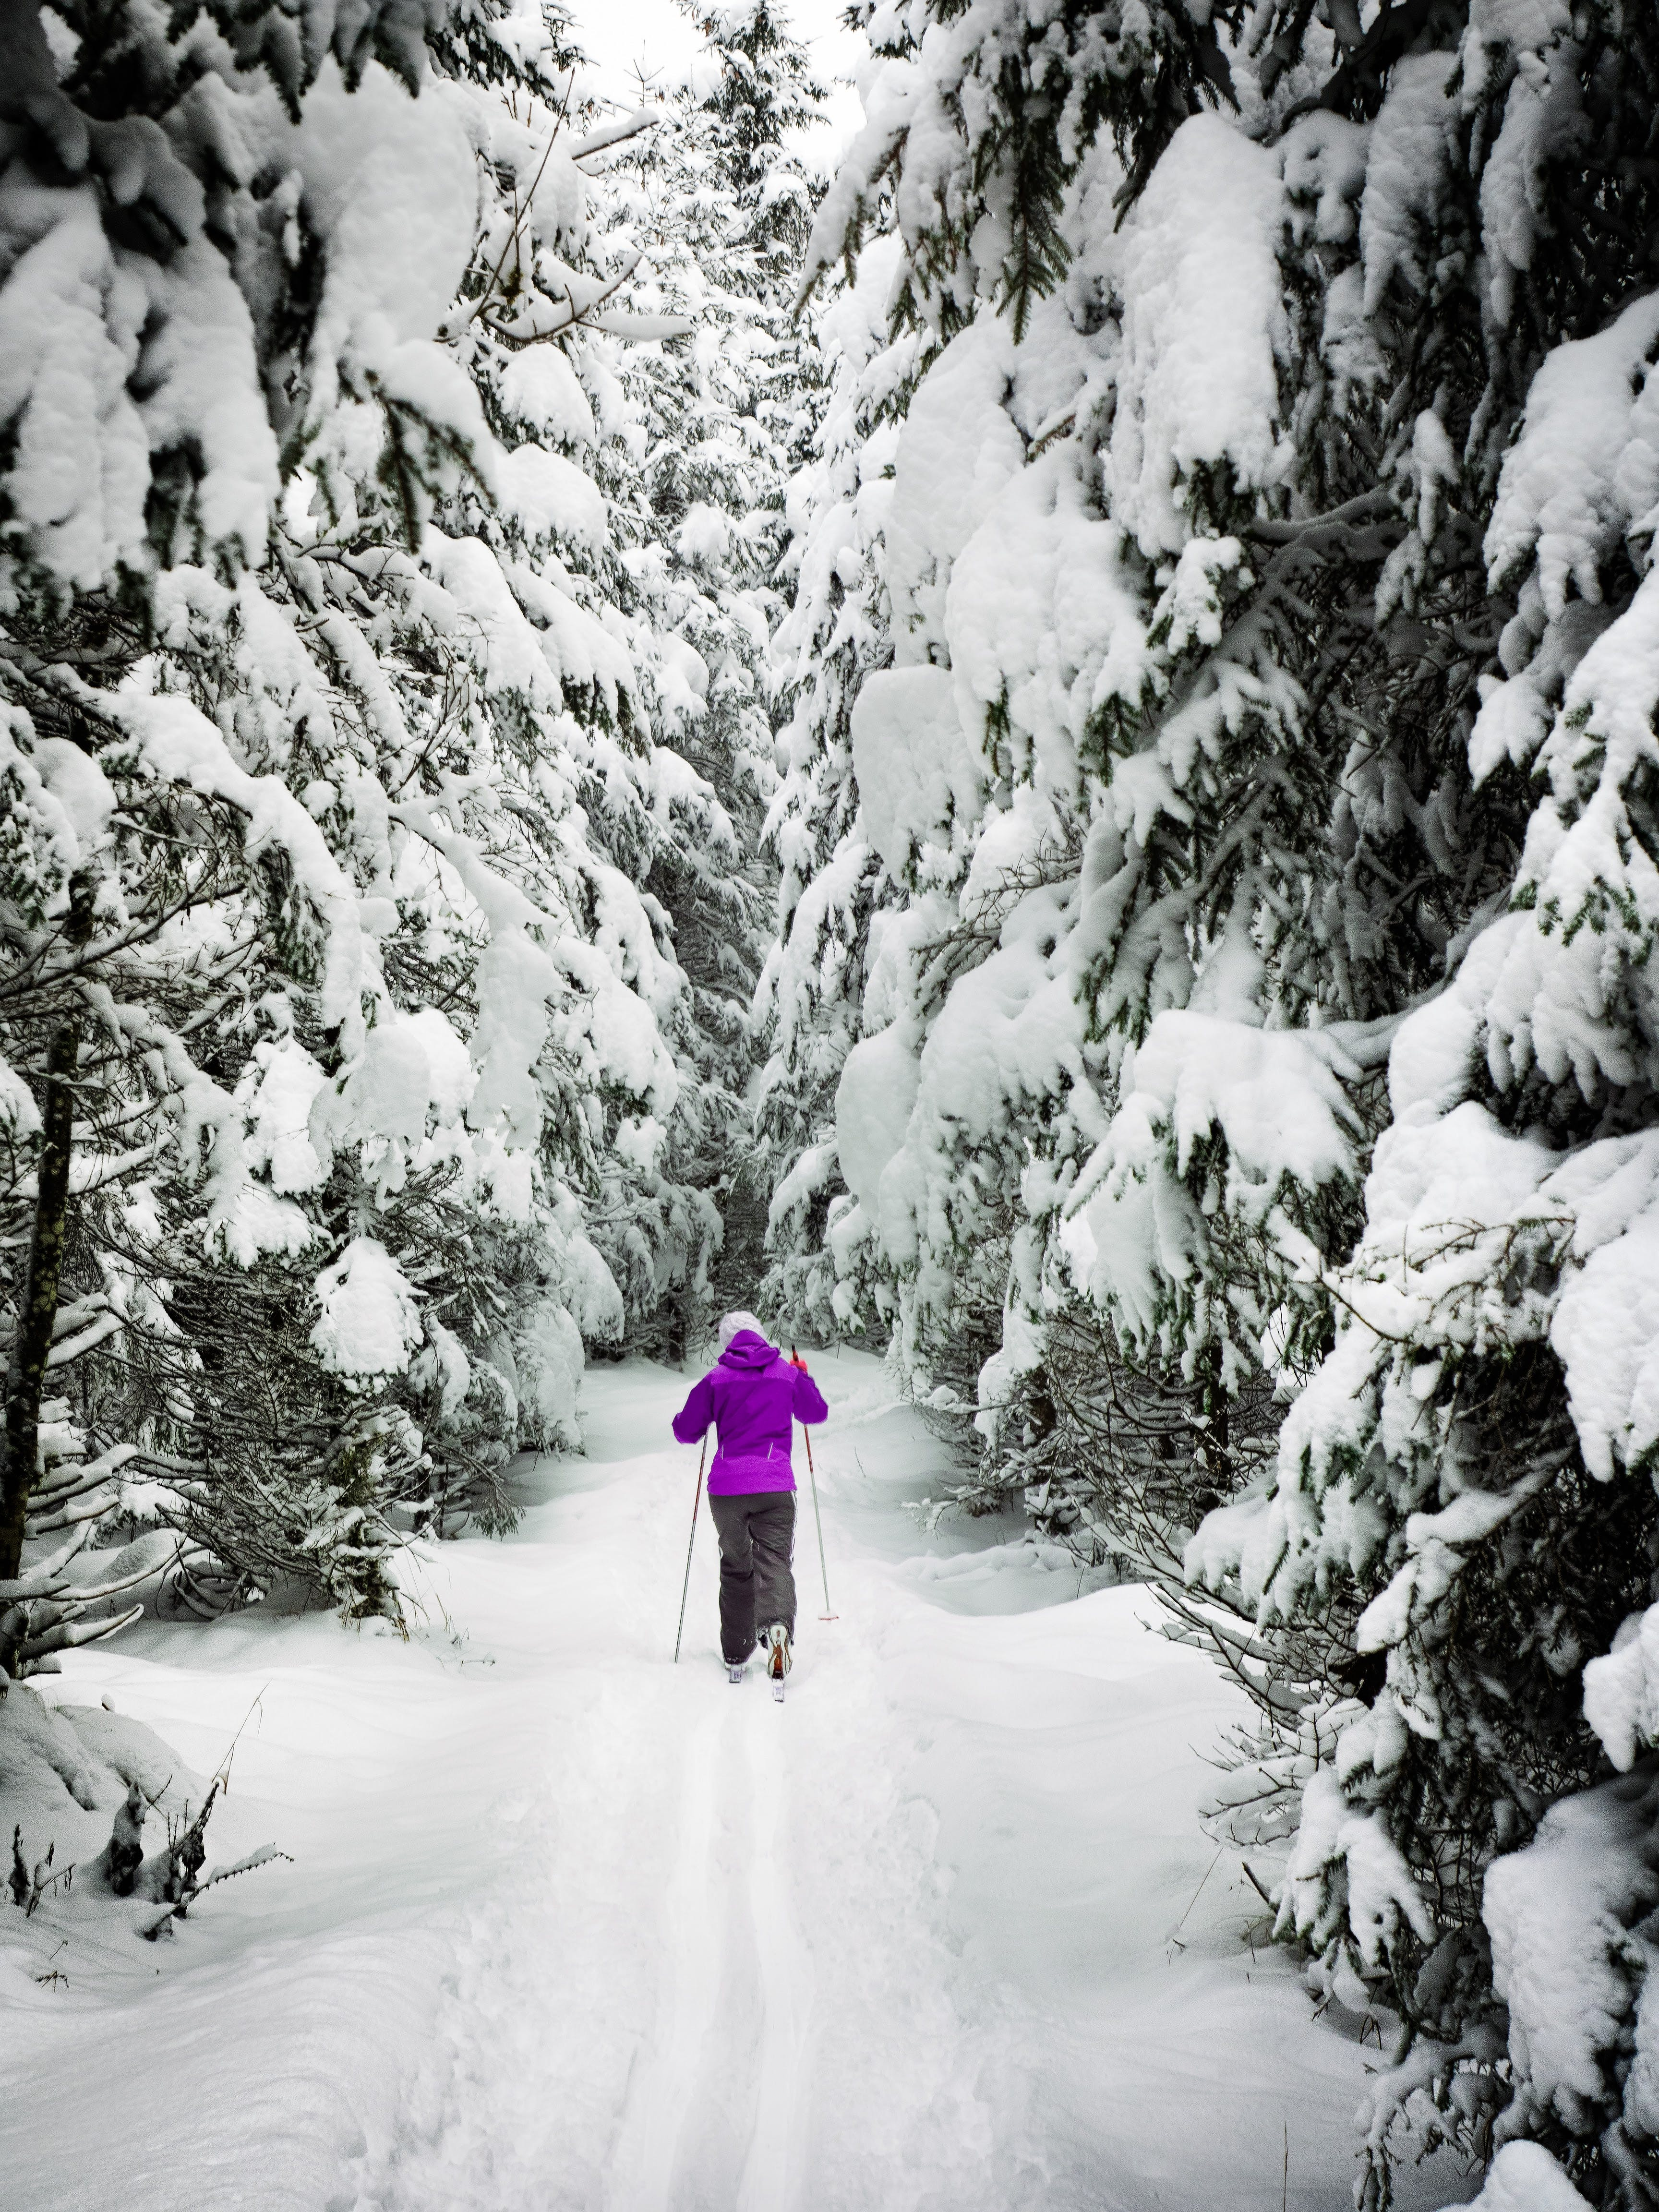 Woman on Snow Ground in the Forest With Rods